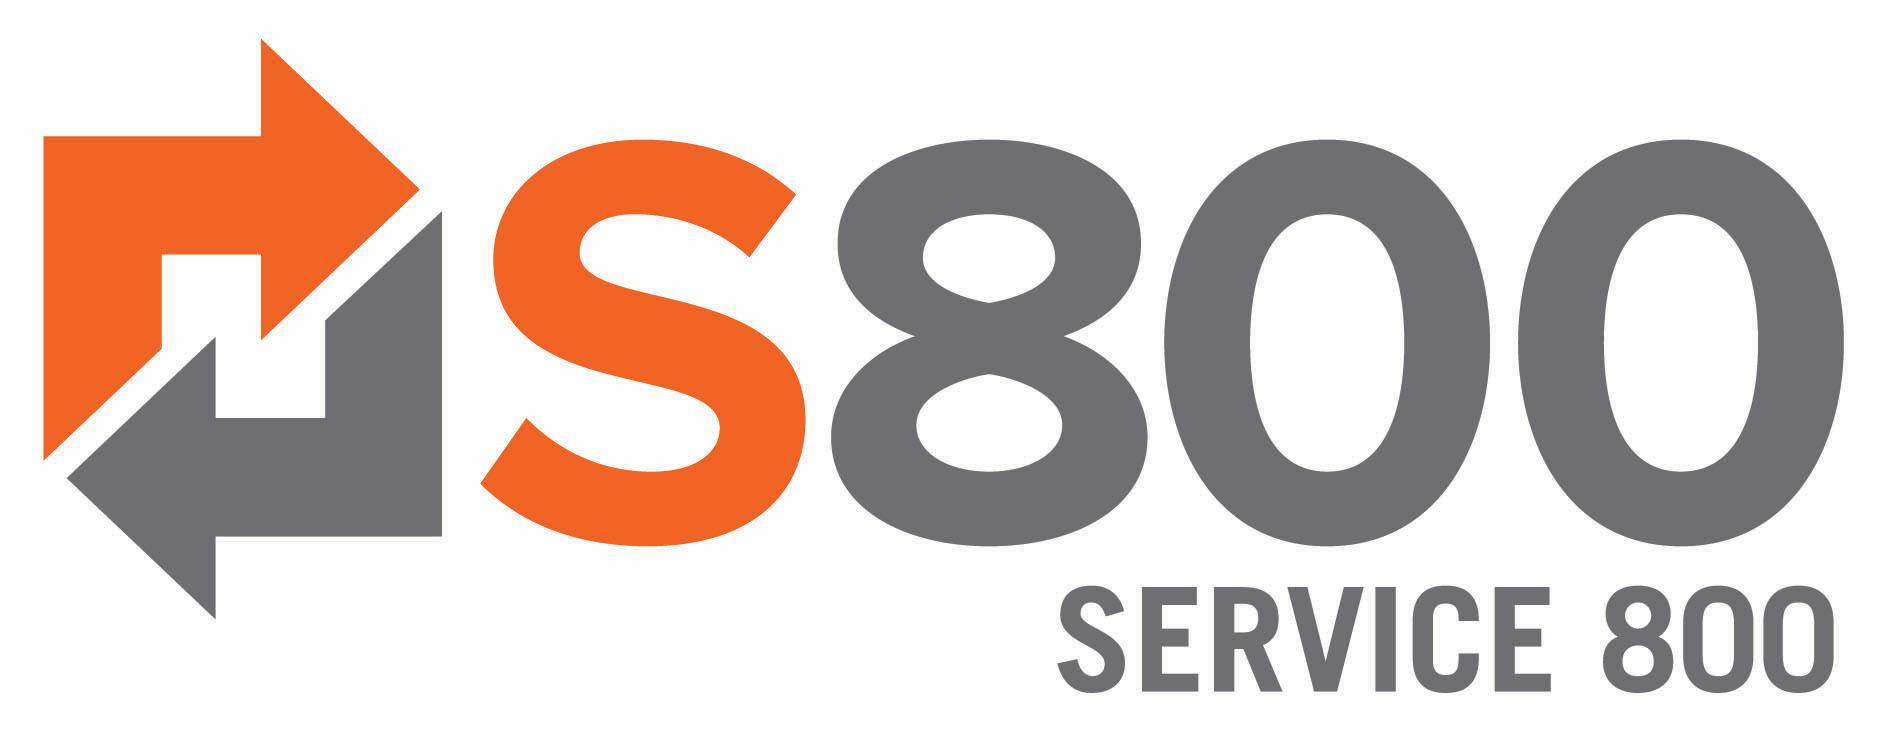 S800_Logo_Transition_web.png